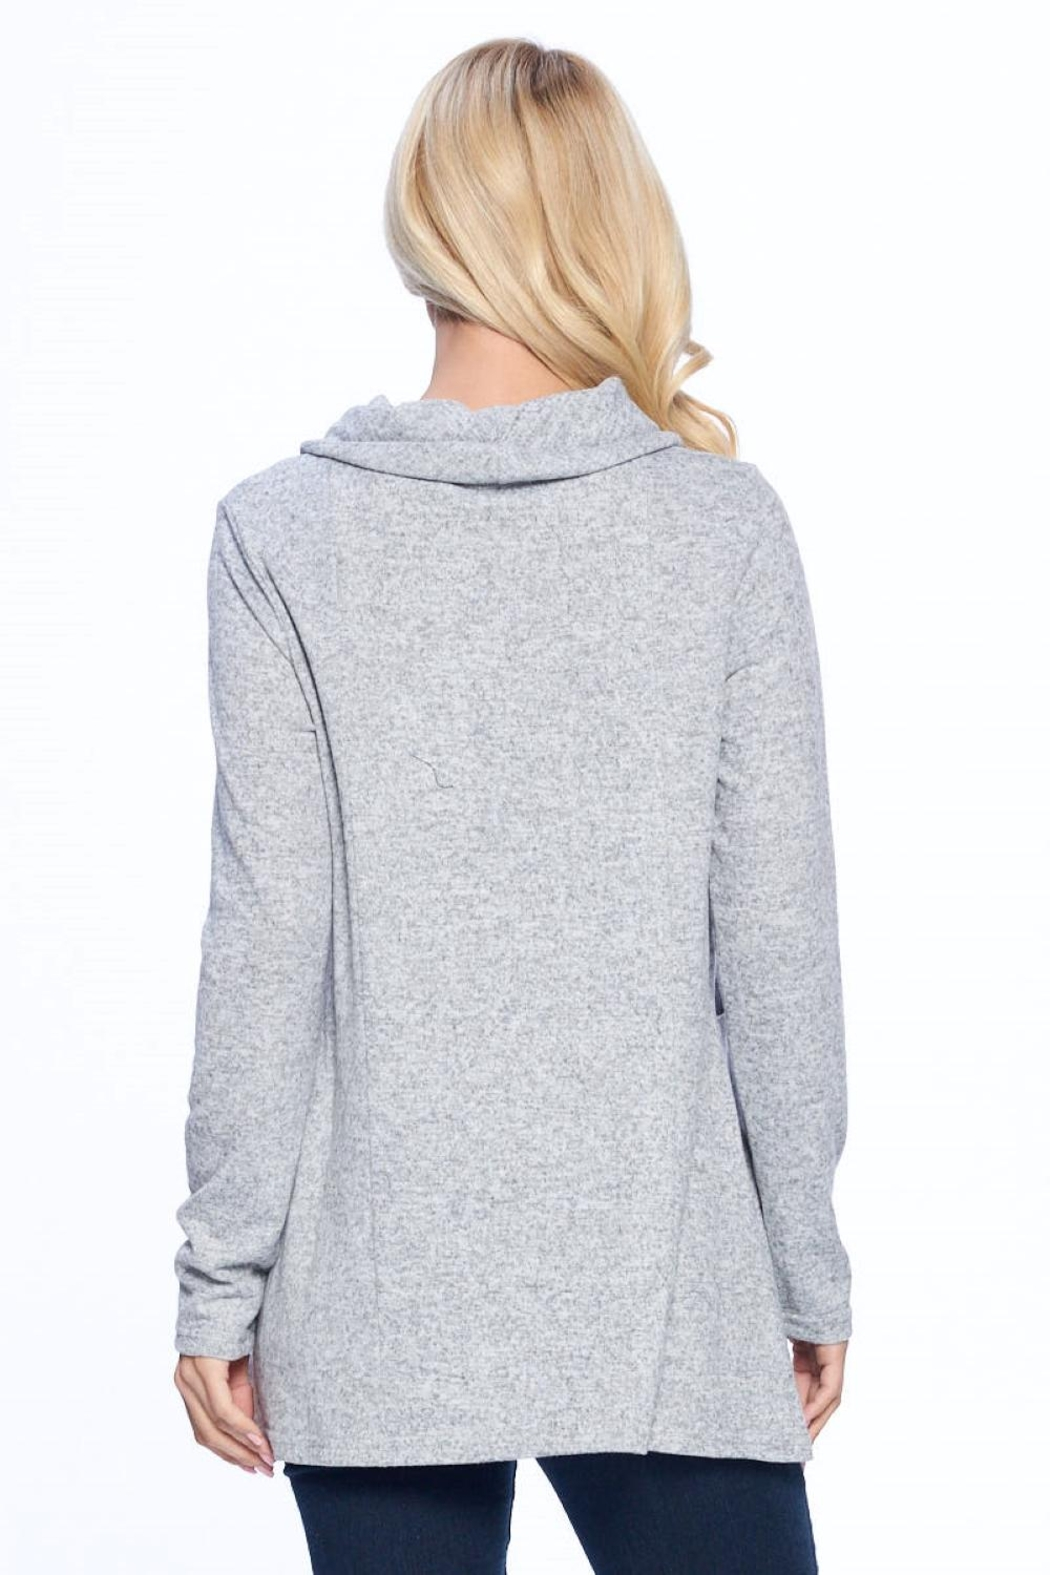 Aryeh Gray Cowl Neck Knit Top - Side Cropped Image